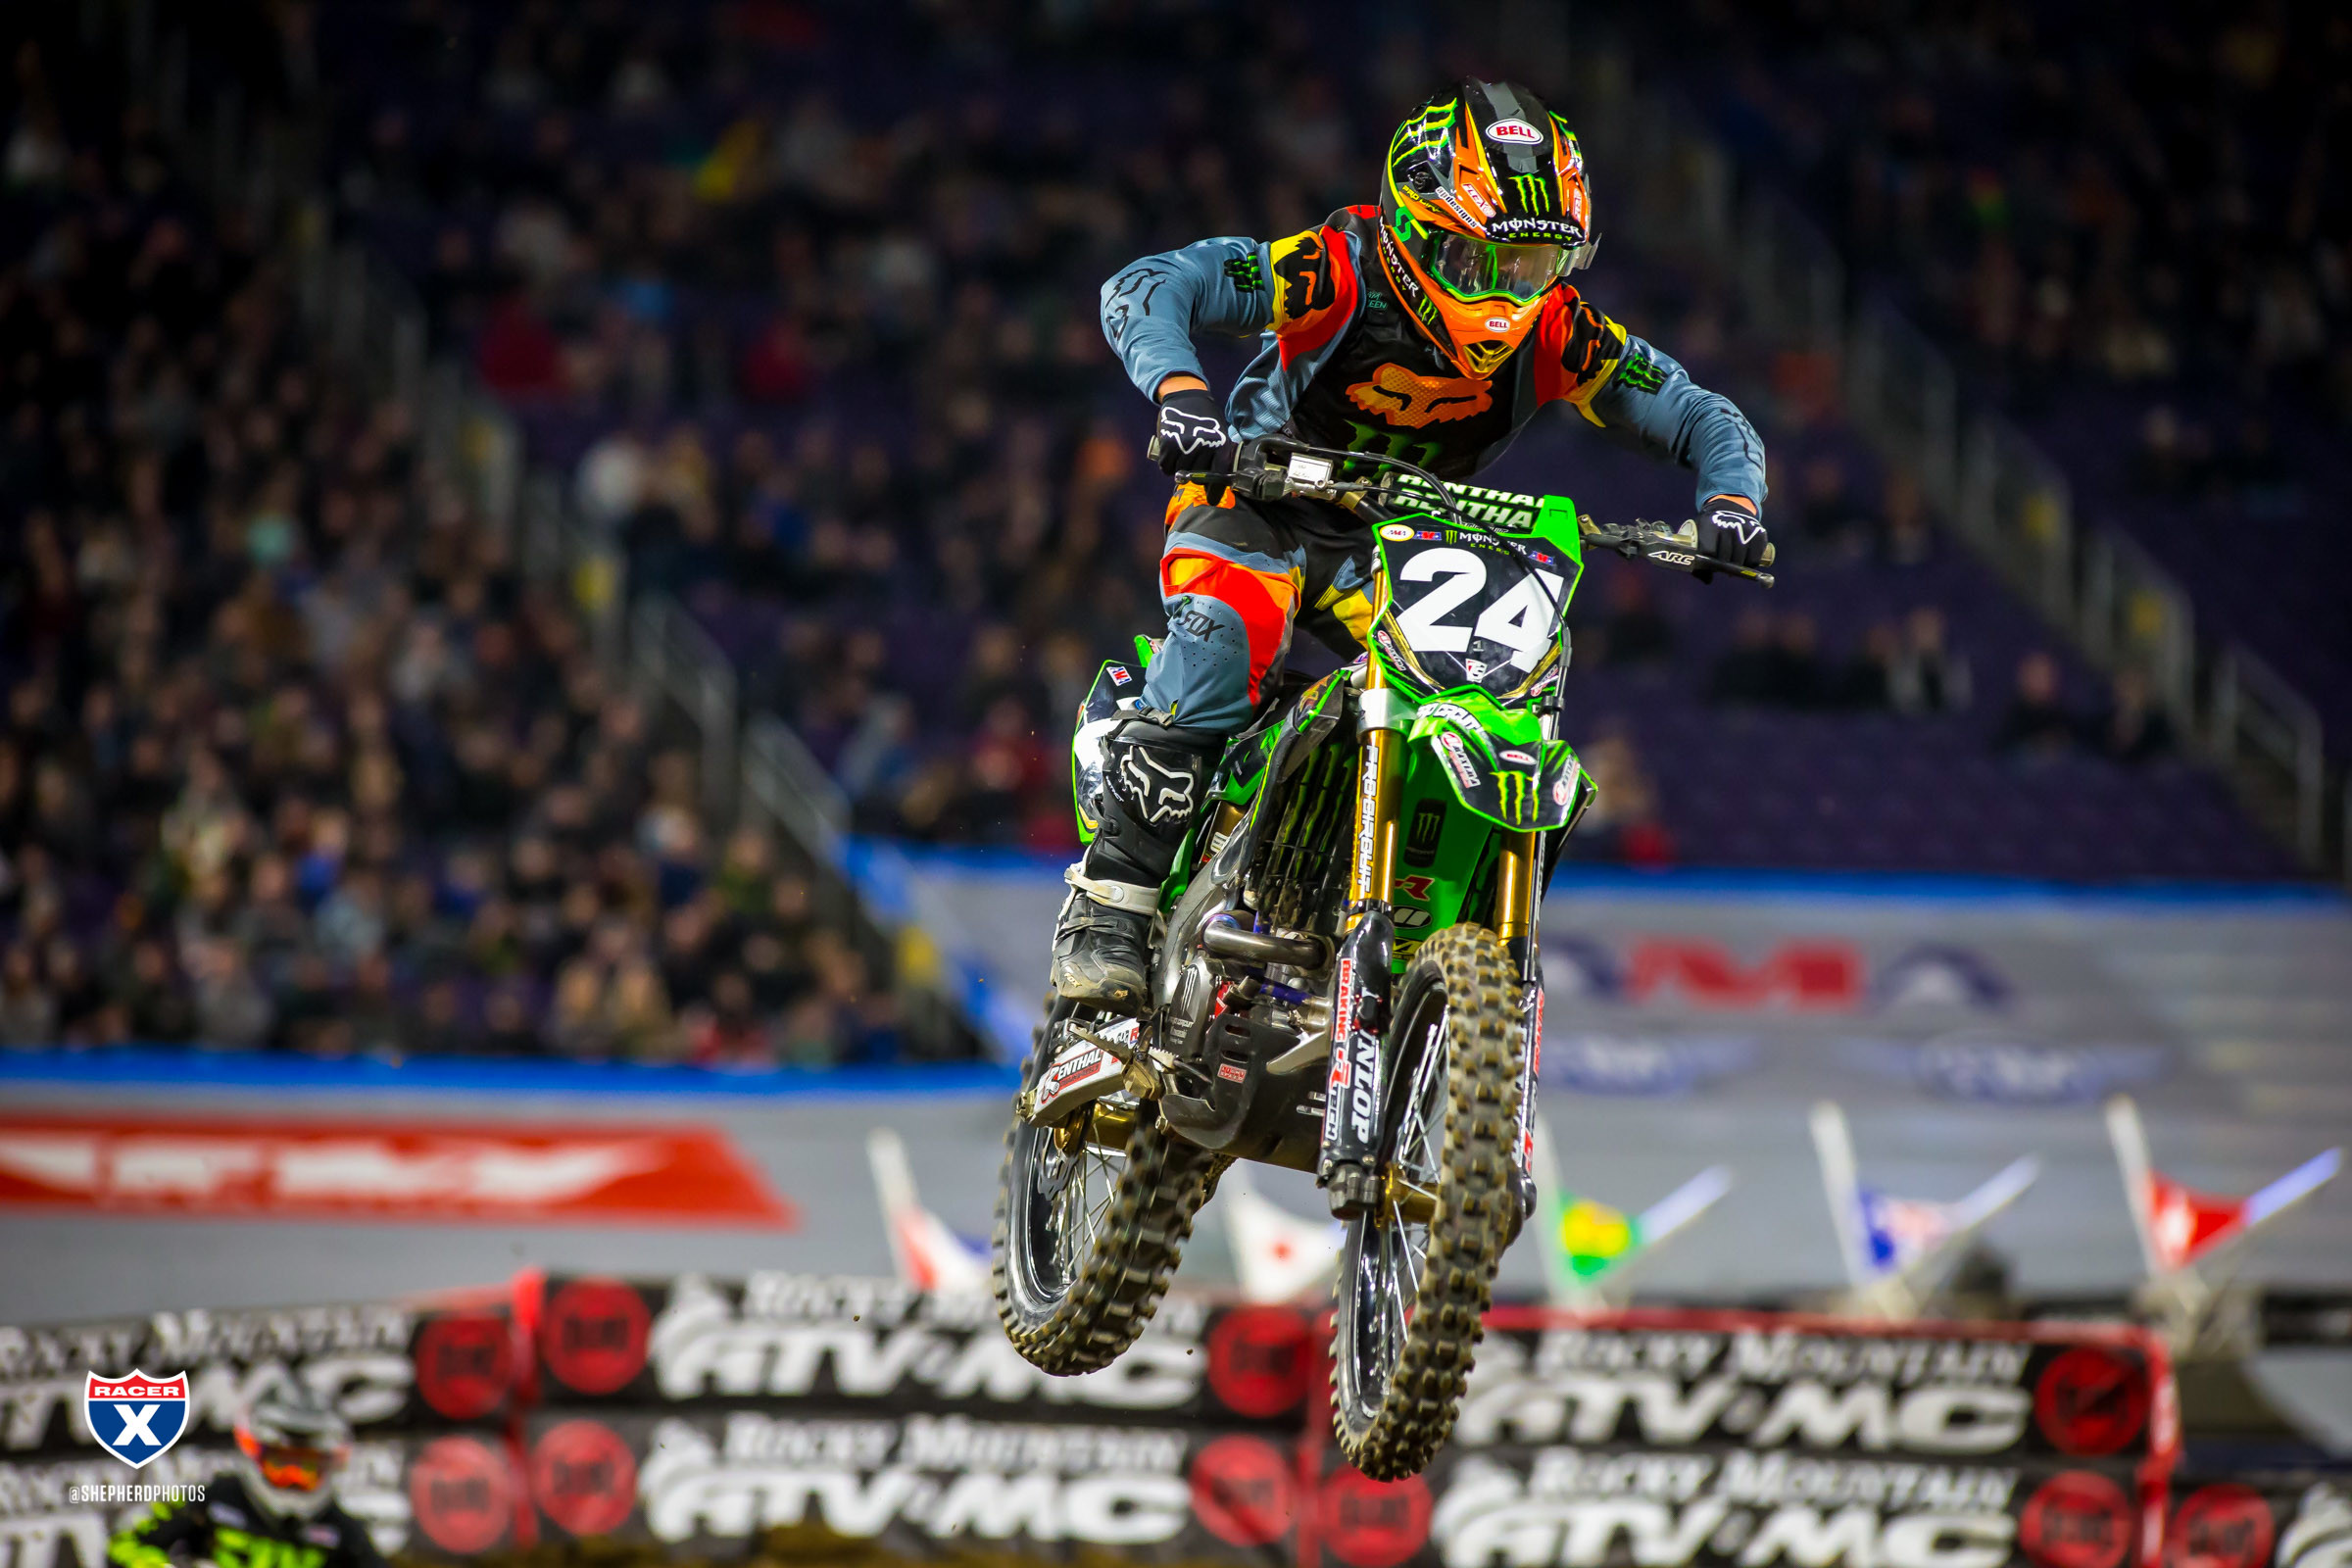 Forkner_RS_SX19_Minneapolis_022